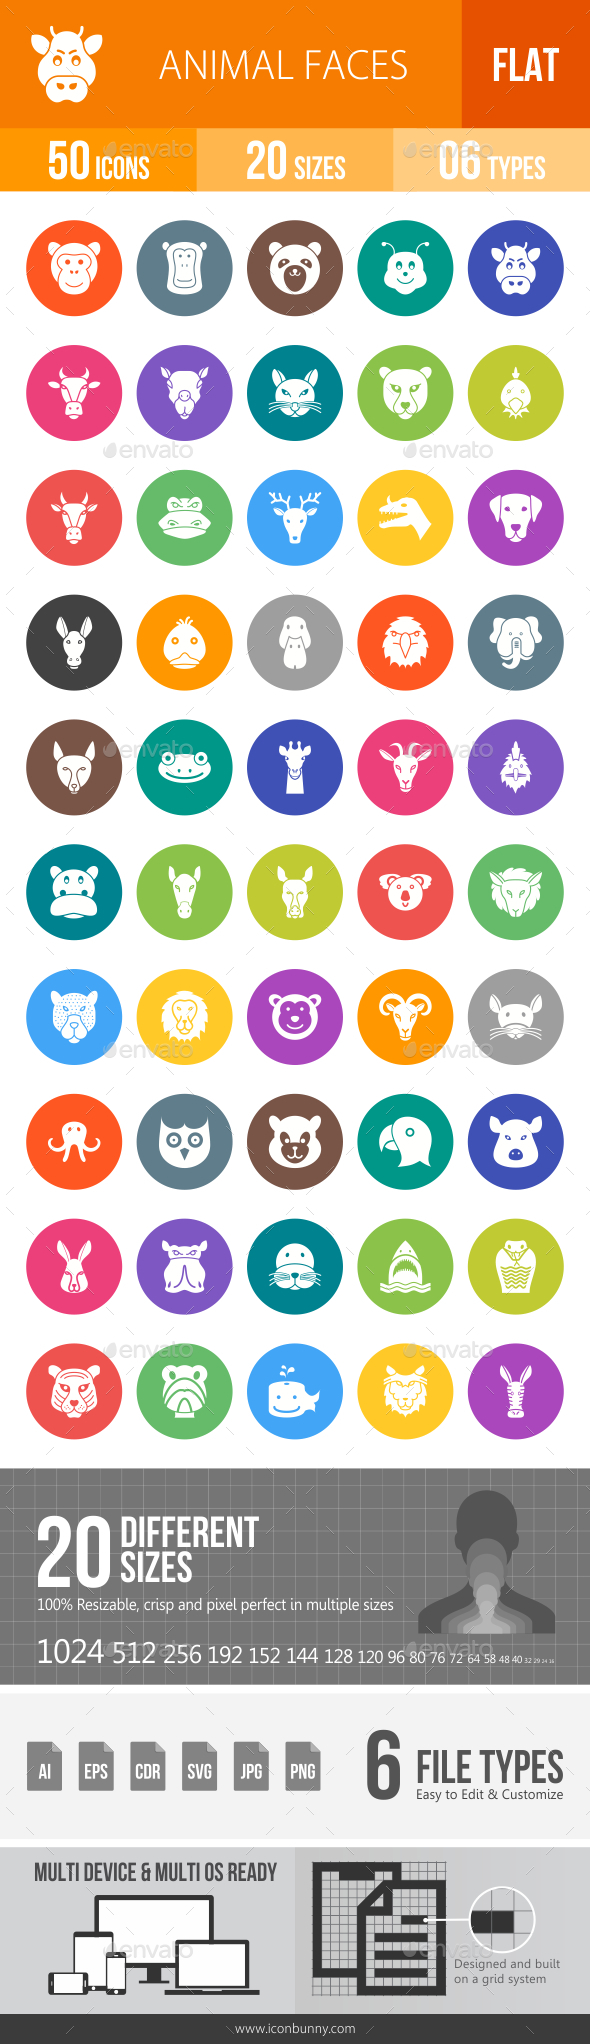 Animal Faces Flat Round Icons - Icons